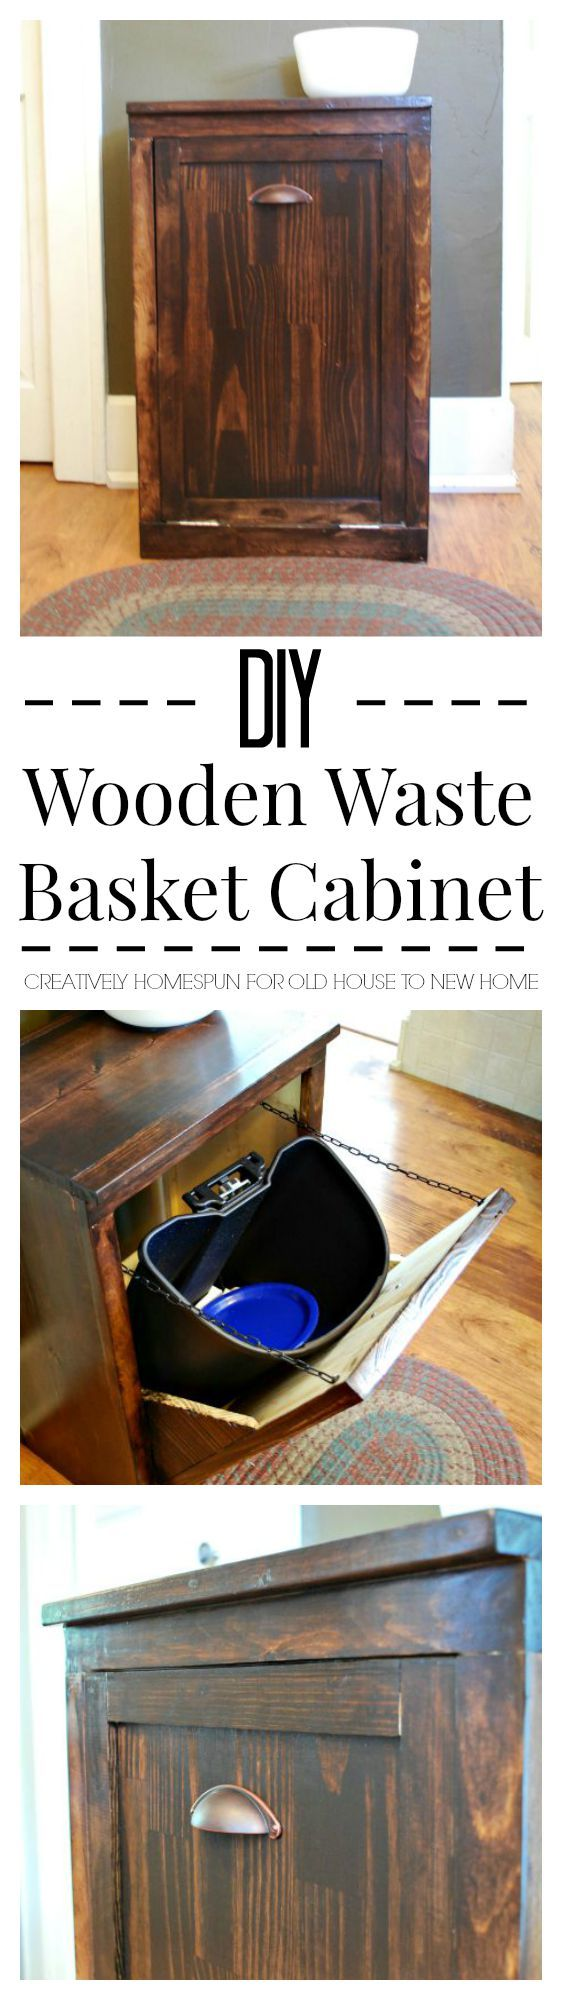 DIY Wooden Waste Basket Cabinet   An Easy DIY That Makes Your Eyesore Of A  Garbage Can Into A Pretty Piece Of Furniture!